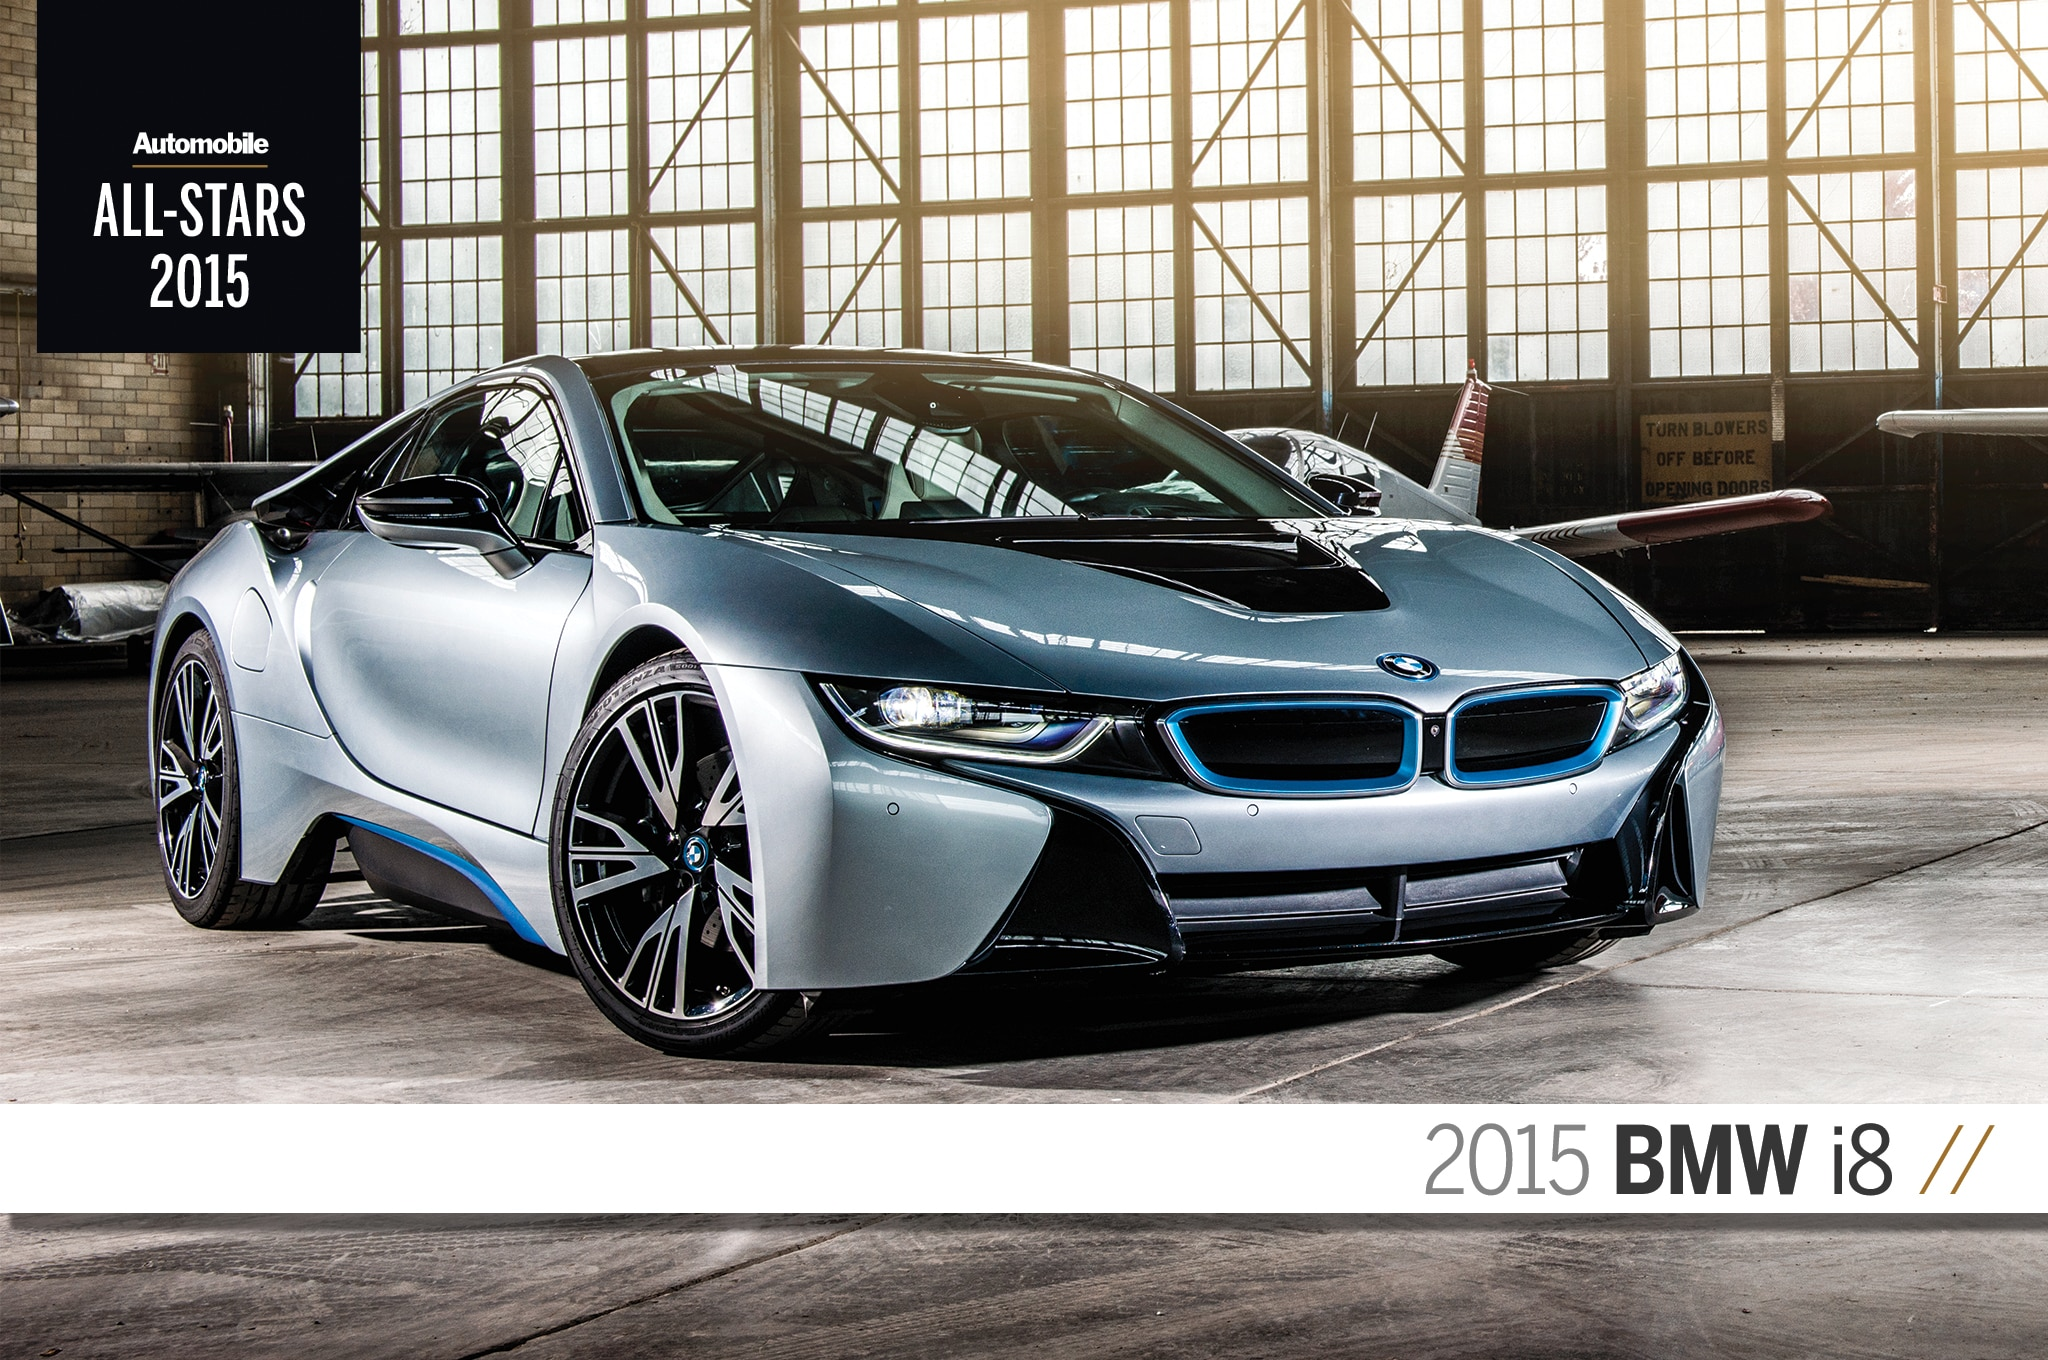 BMW i8: 2015 AUTOMOBILE All-Star | Automobile Magazine